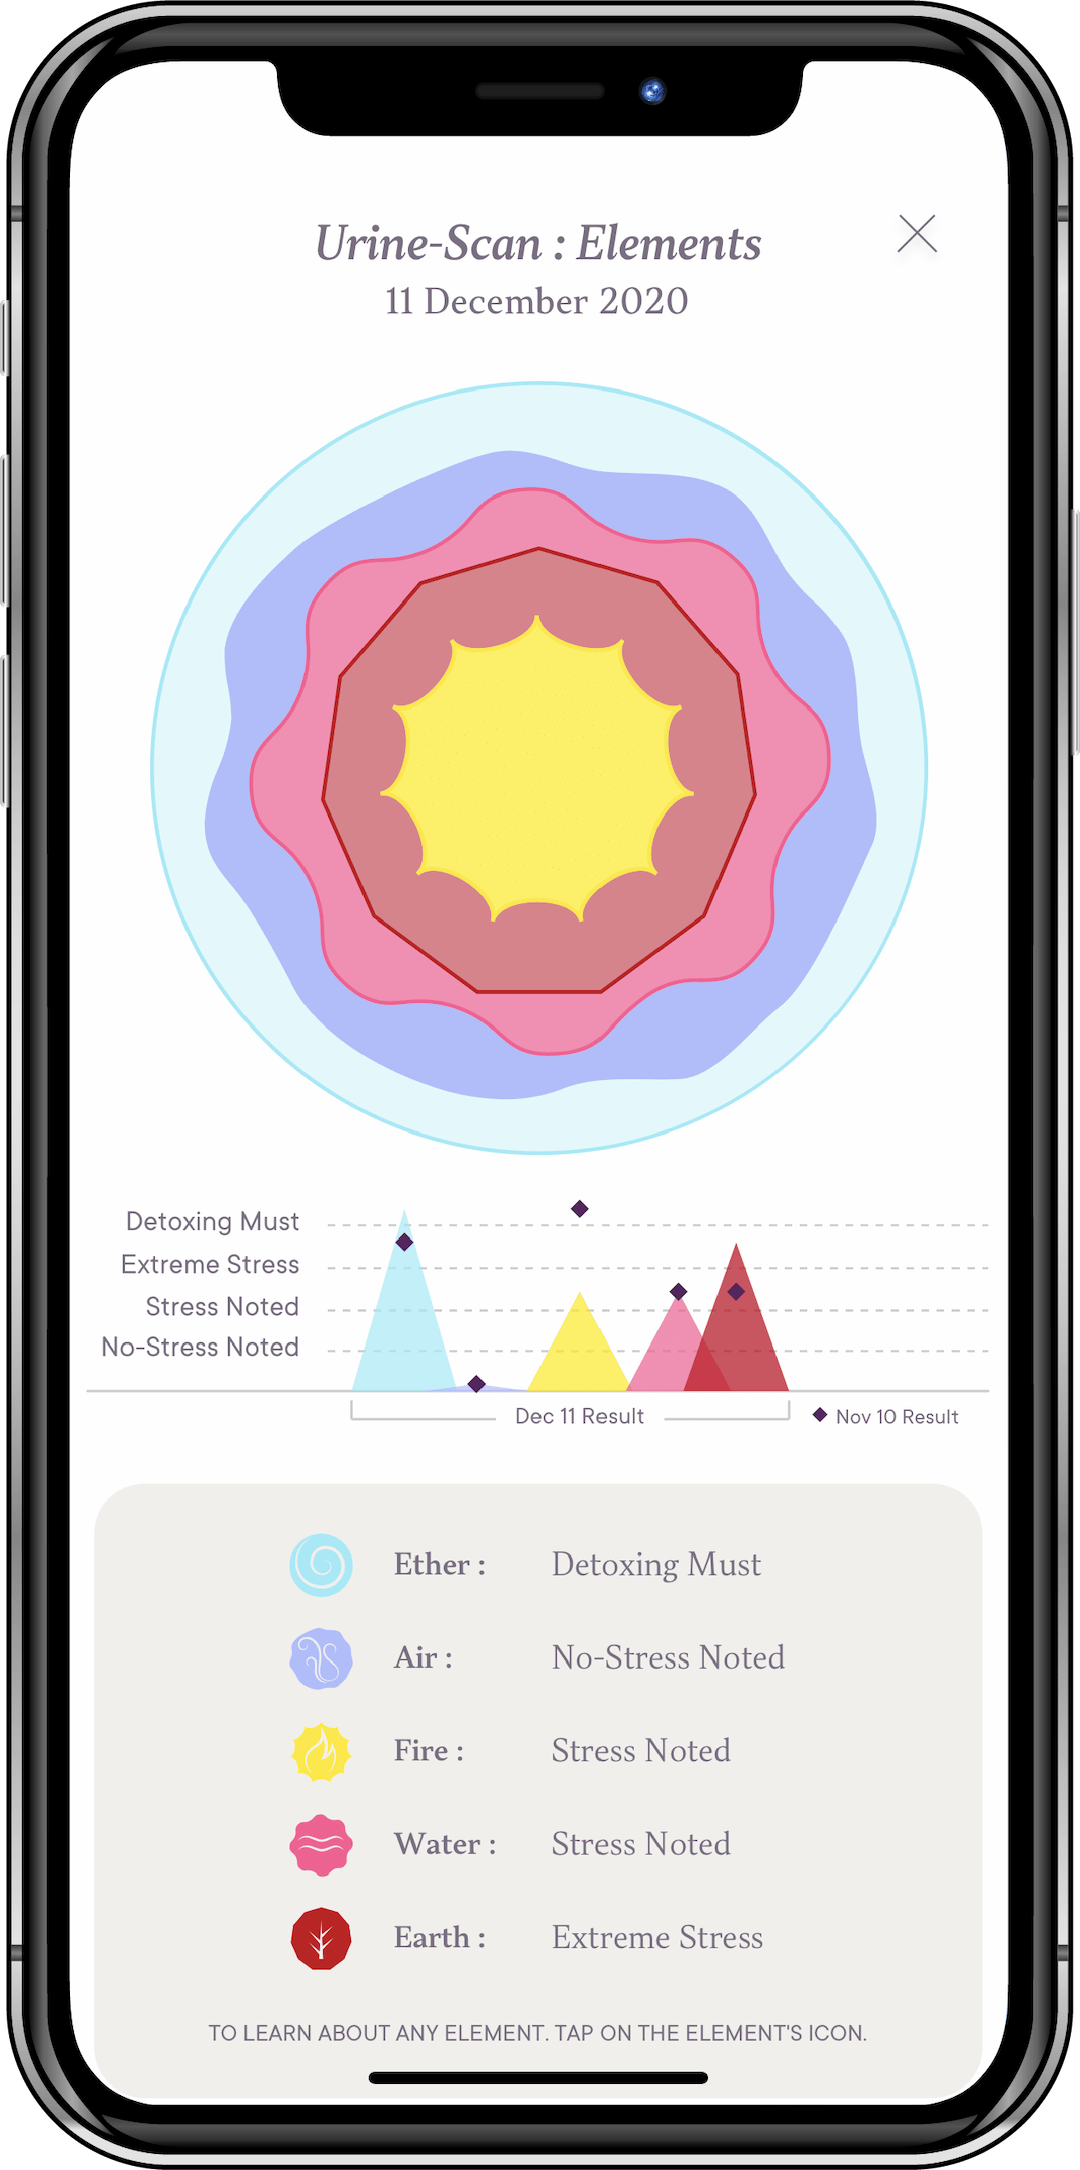 Fasting Culture App - Urine Scan: Elements